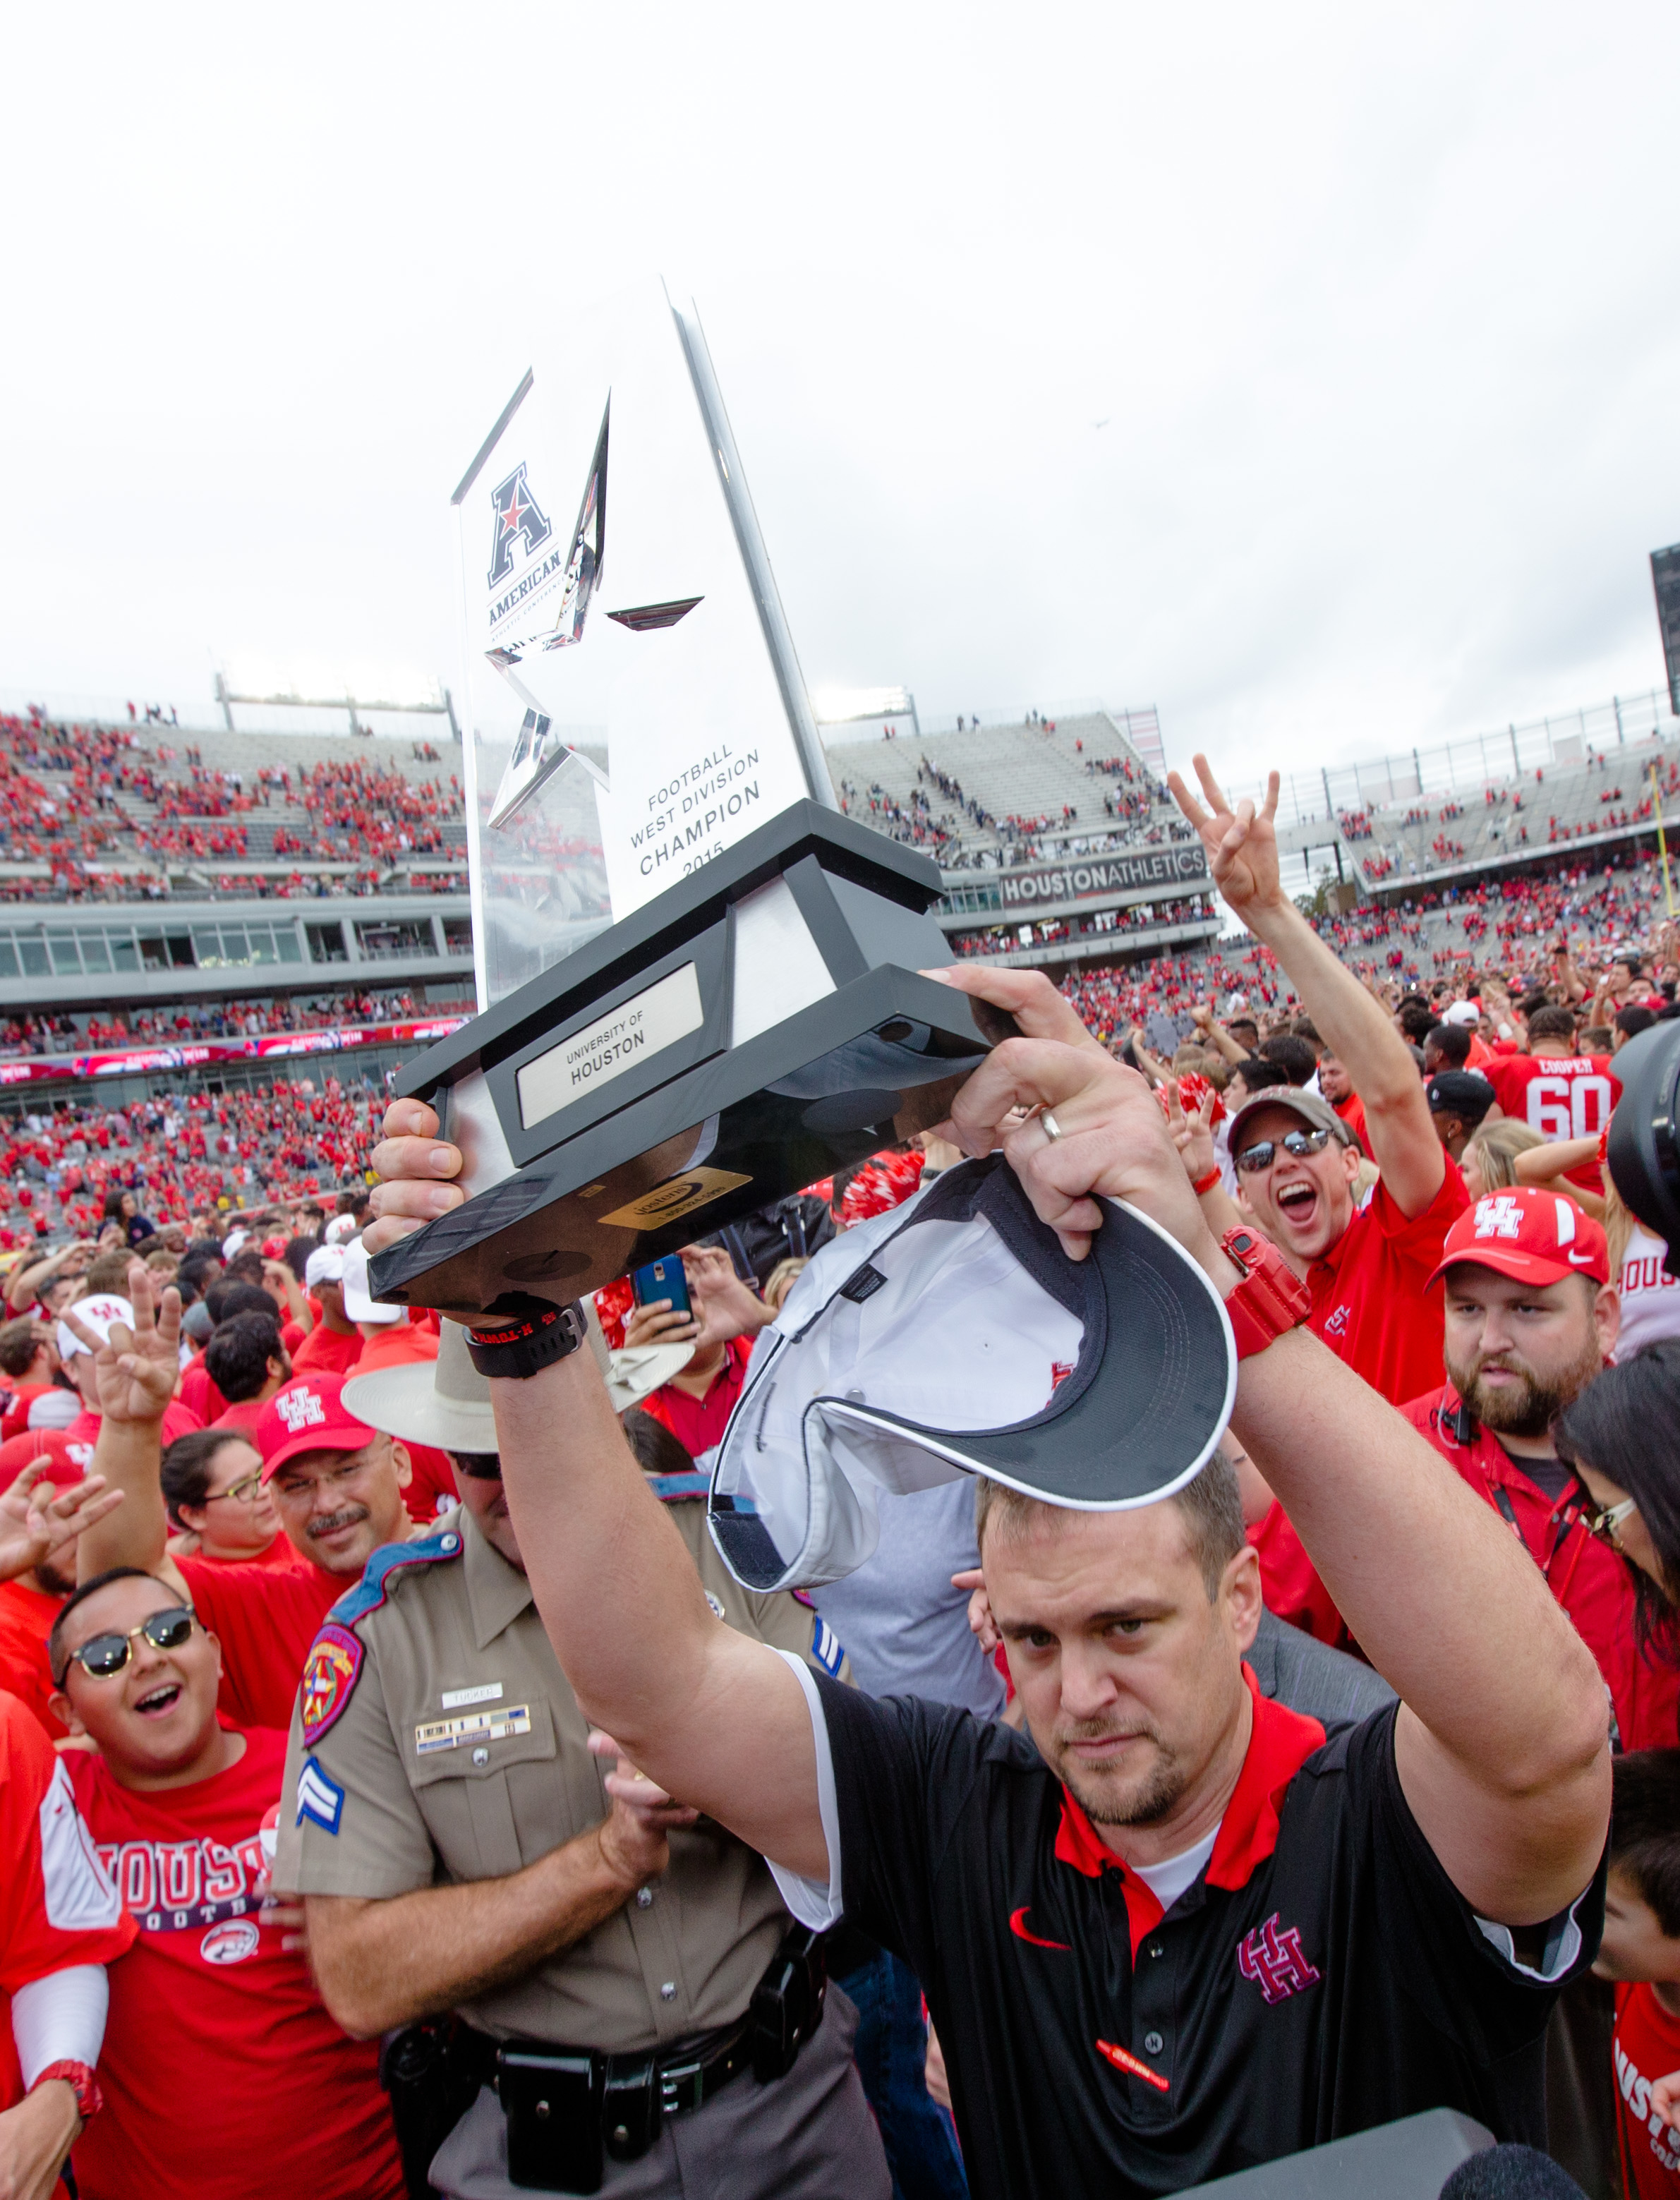 Houston's head coach Tom Herman holding the American West Trophy on the field after a NCAA college football game against Navy Friday, Nov. 27, 2015, in Houston, Texas. Houston defeated Navy 52-31.(AP Photo/Juan DeLeon)